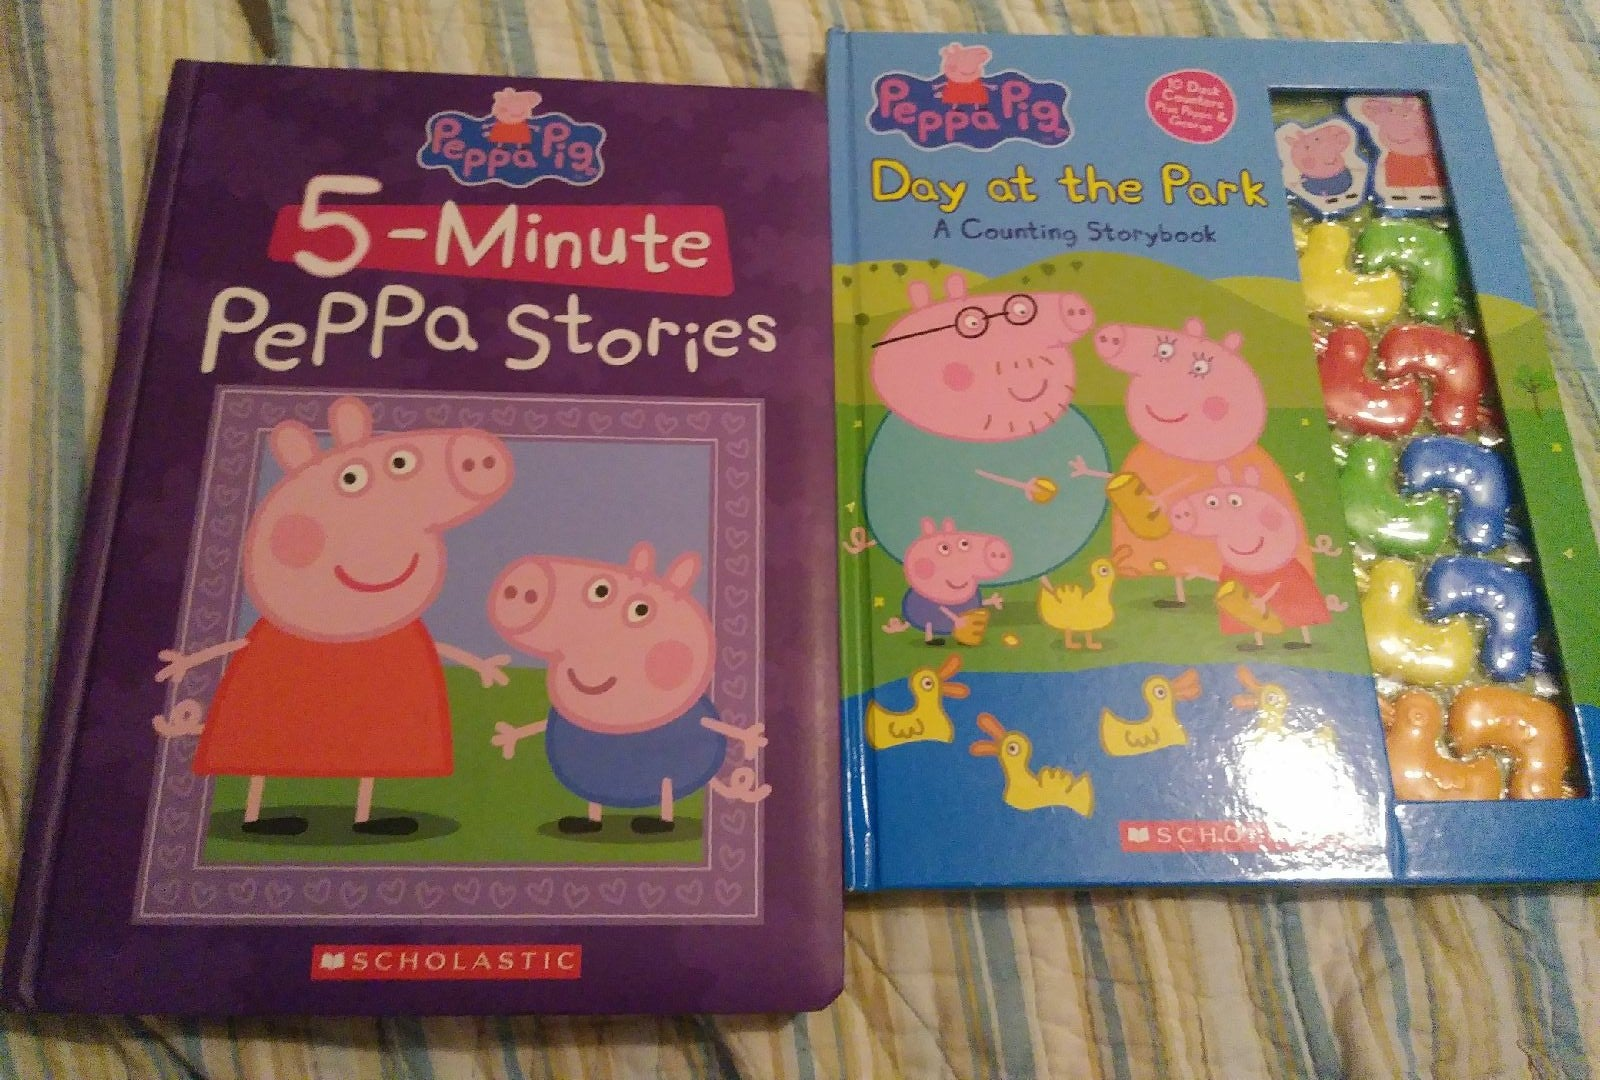 2 peppa pig books